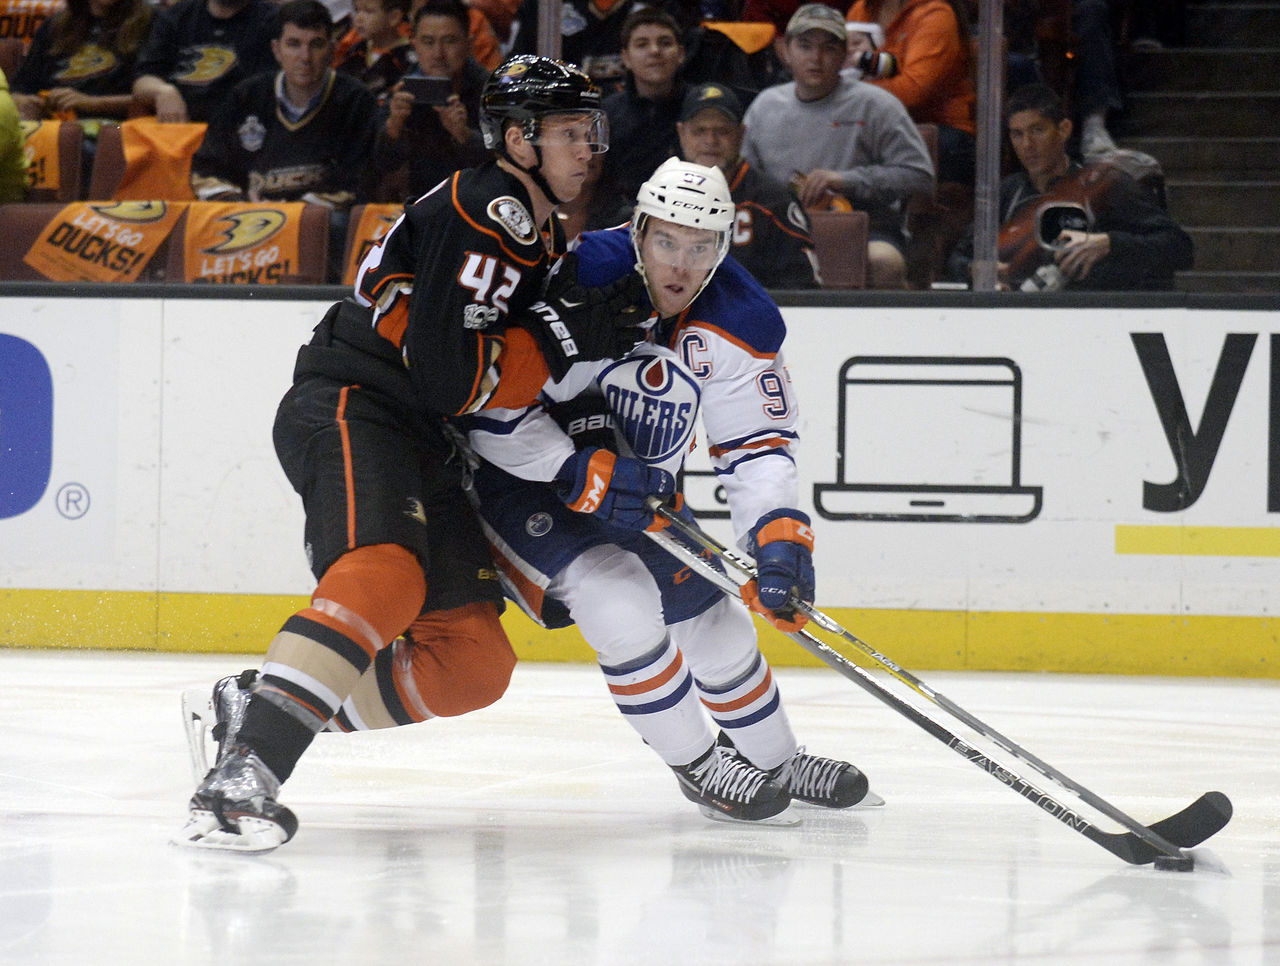 Cropped_2017-04-29t032948z_616721544_nocid_rtrmadp_3_nhl-stanley-cup-playoffs-edmonton-oilers-at-anaheim-ducks